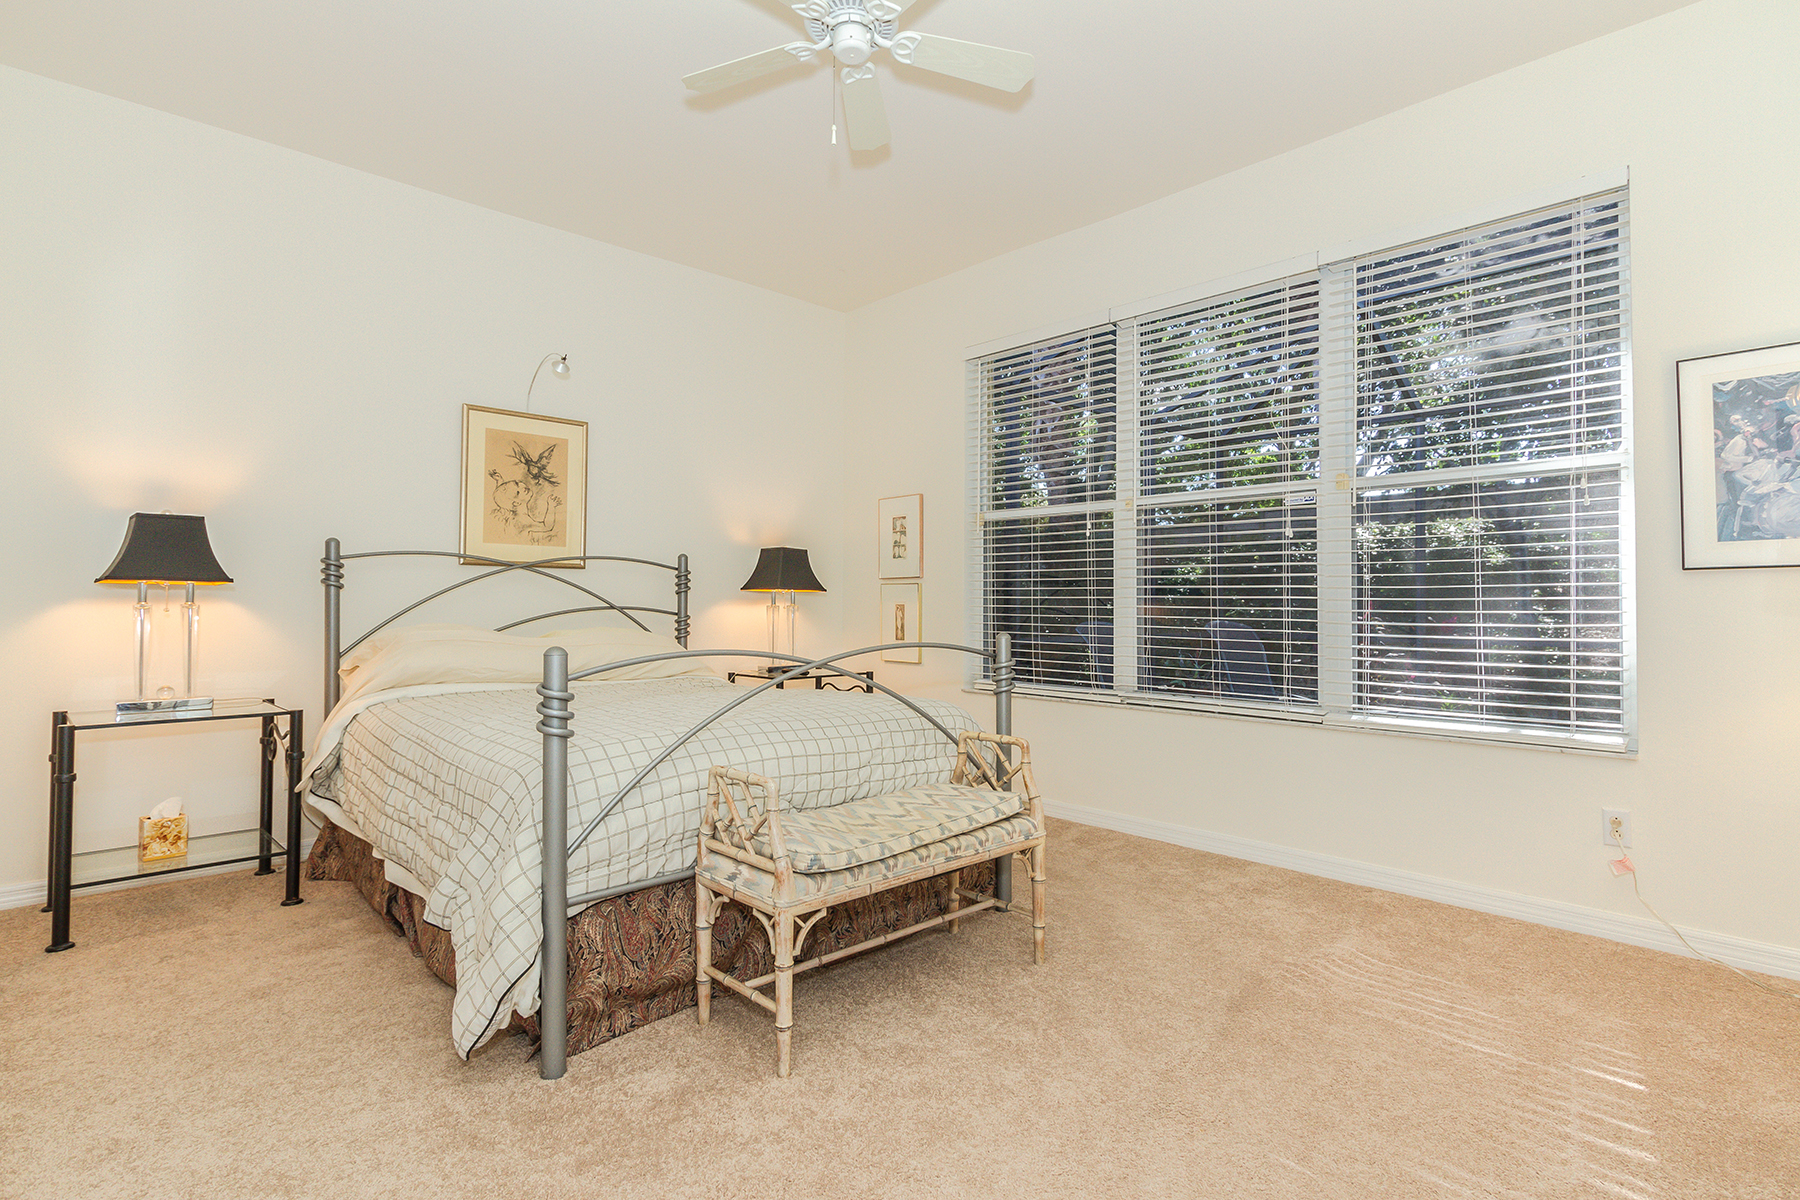 Single Family Home for Rent at PELICAN MARSH - VENTURA 8824 Ventura Way, Naples, Florida 34109 United States